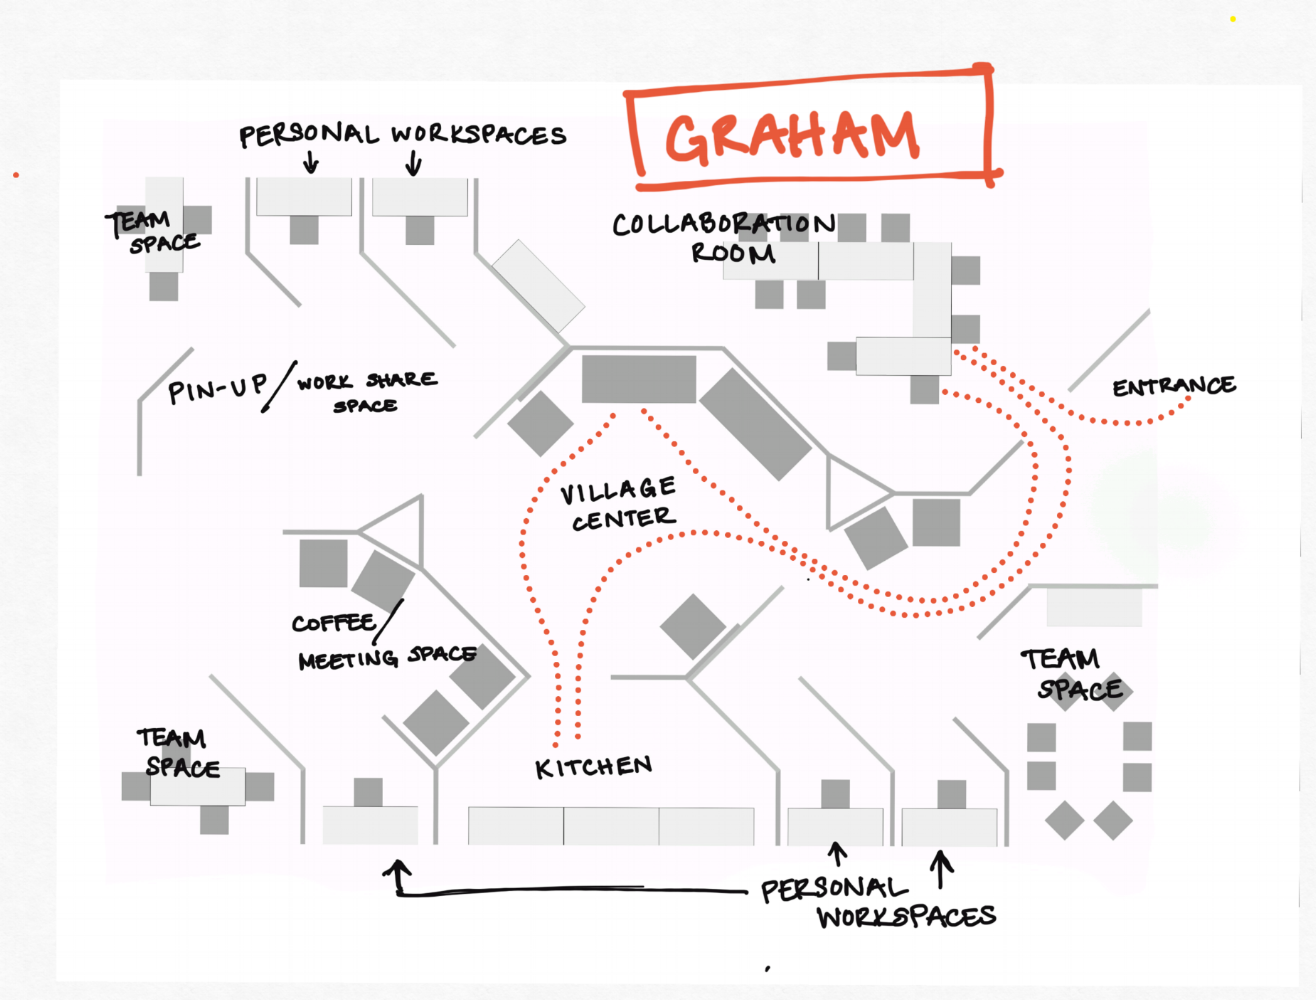 Graham is a consultant to a larger collaborative project. He works with a team in the morning and in the afternoon he decides to work in the village center on his laptop. He checks back in with the team in the late afternoon before he heads home.